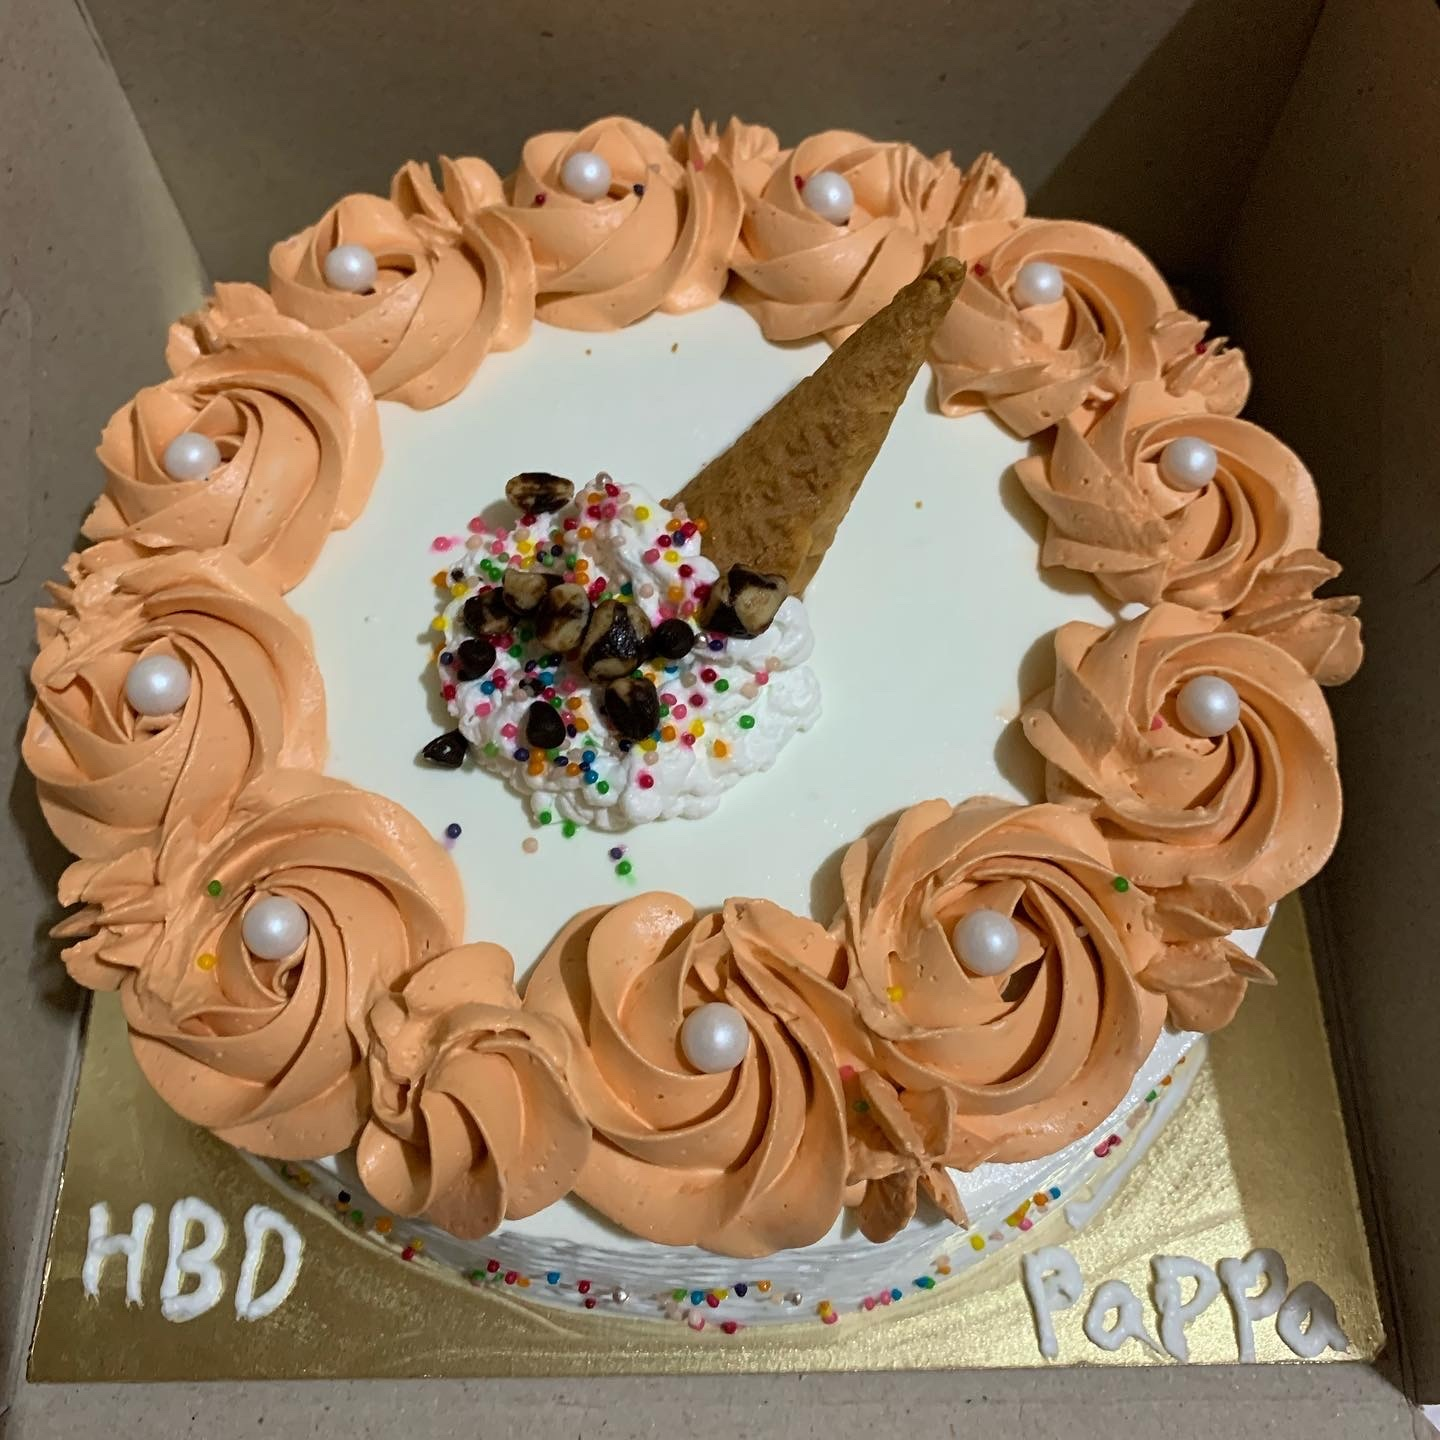 American Ice Cream With Nuts Cake Designs, Images, Price Near Me